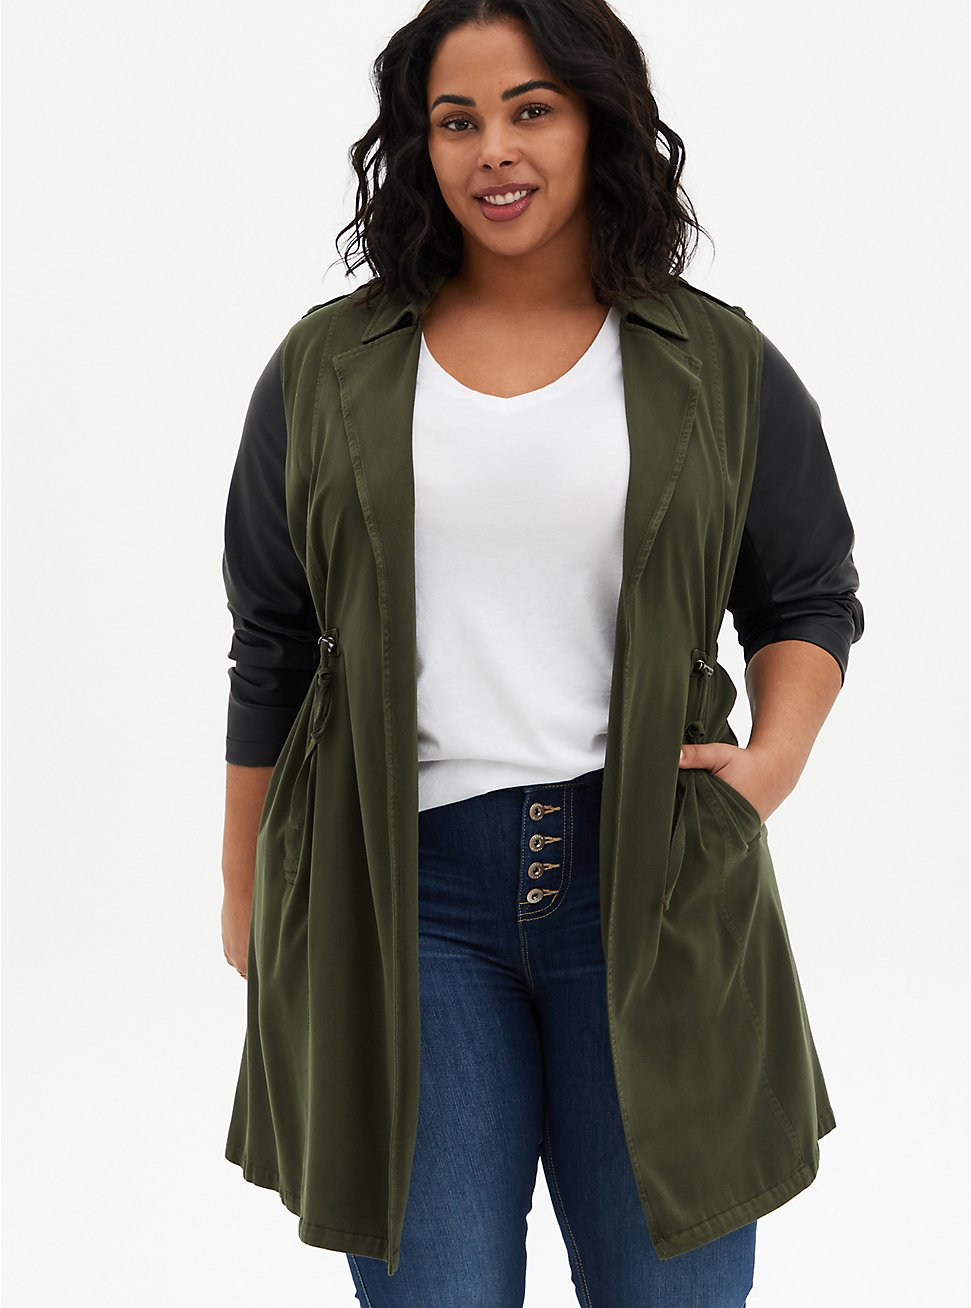 Olive Green Twill & Faux Leather Anorak, ROSIN, hi-res